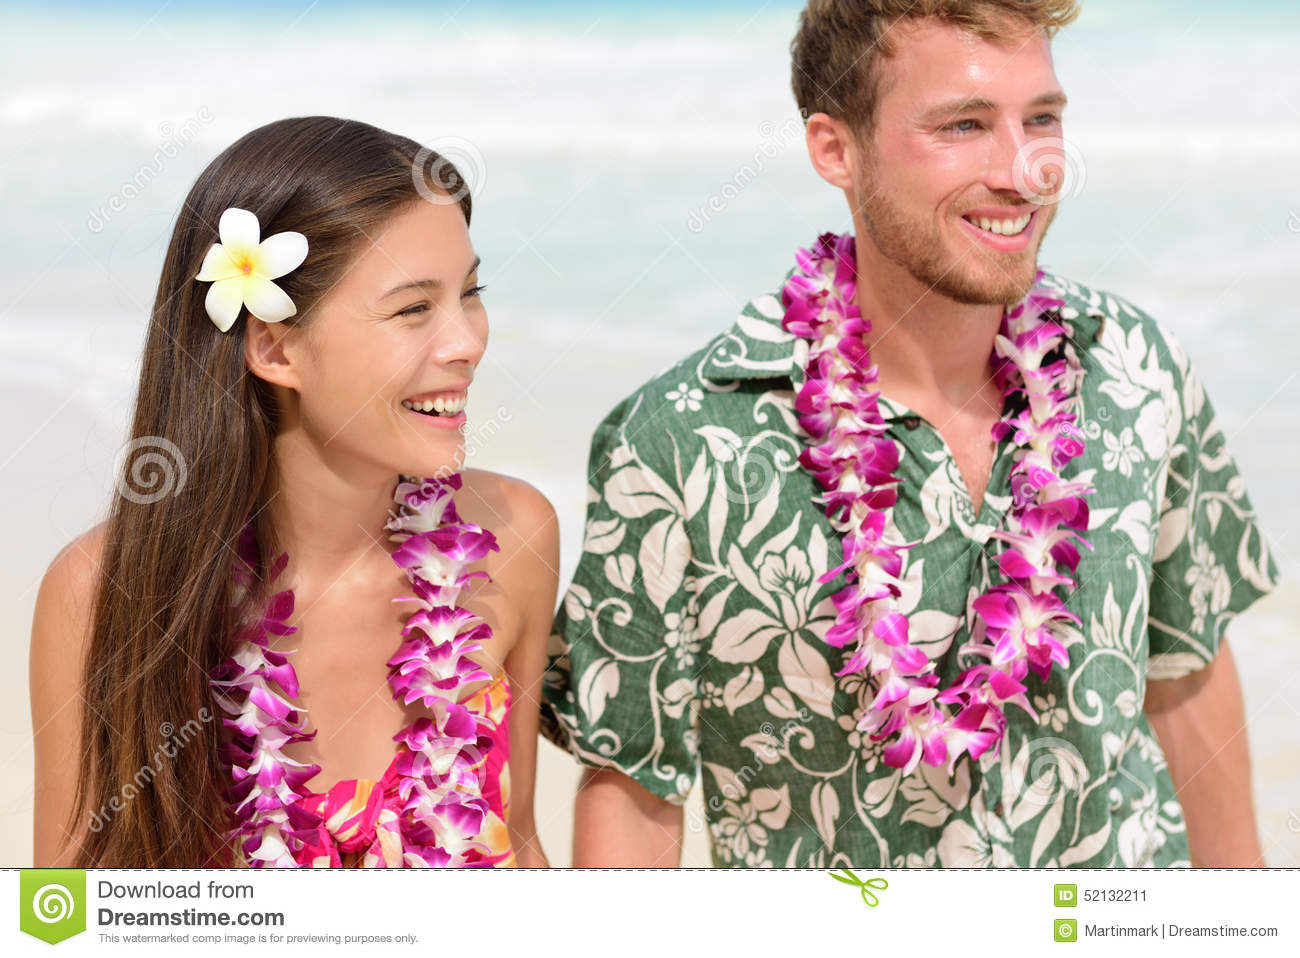 Women seeking men hawaii